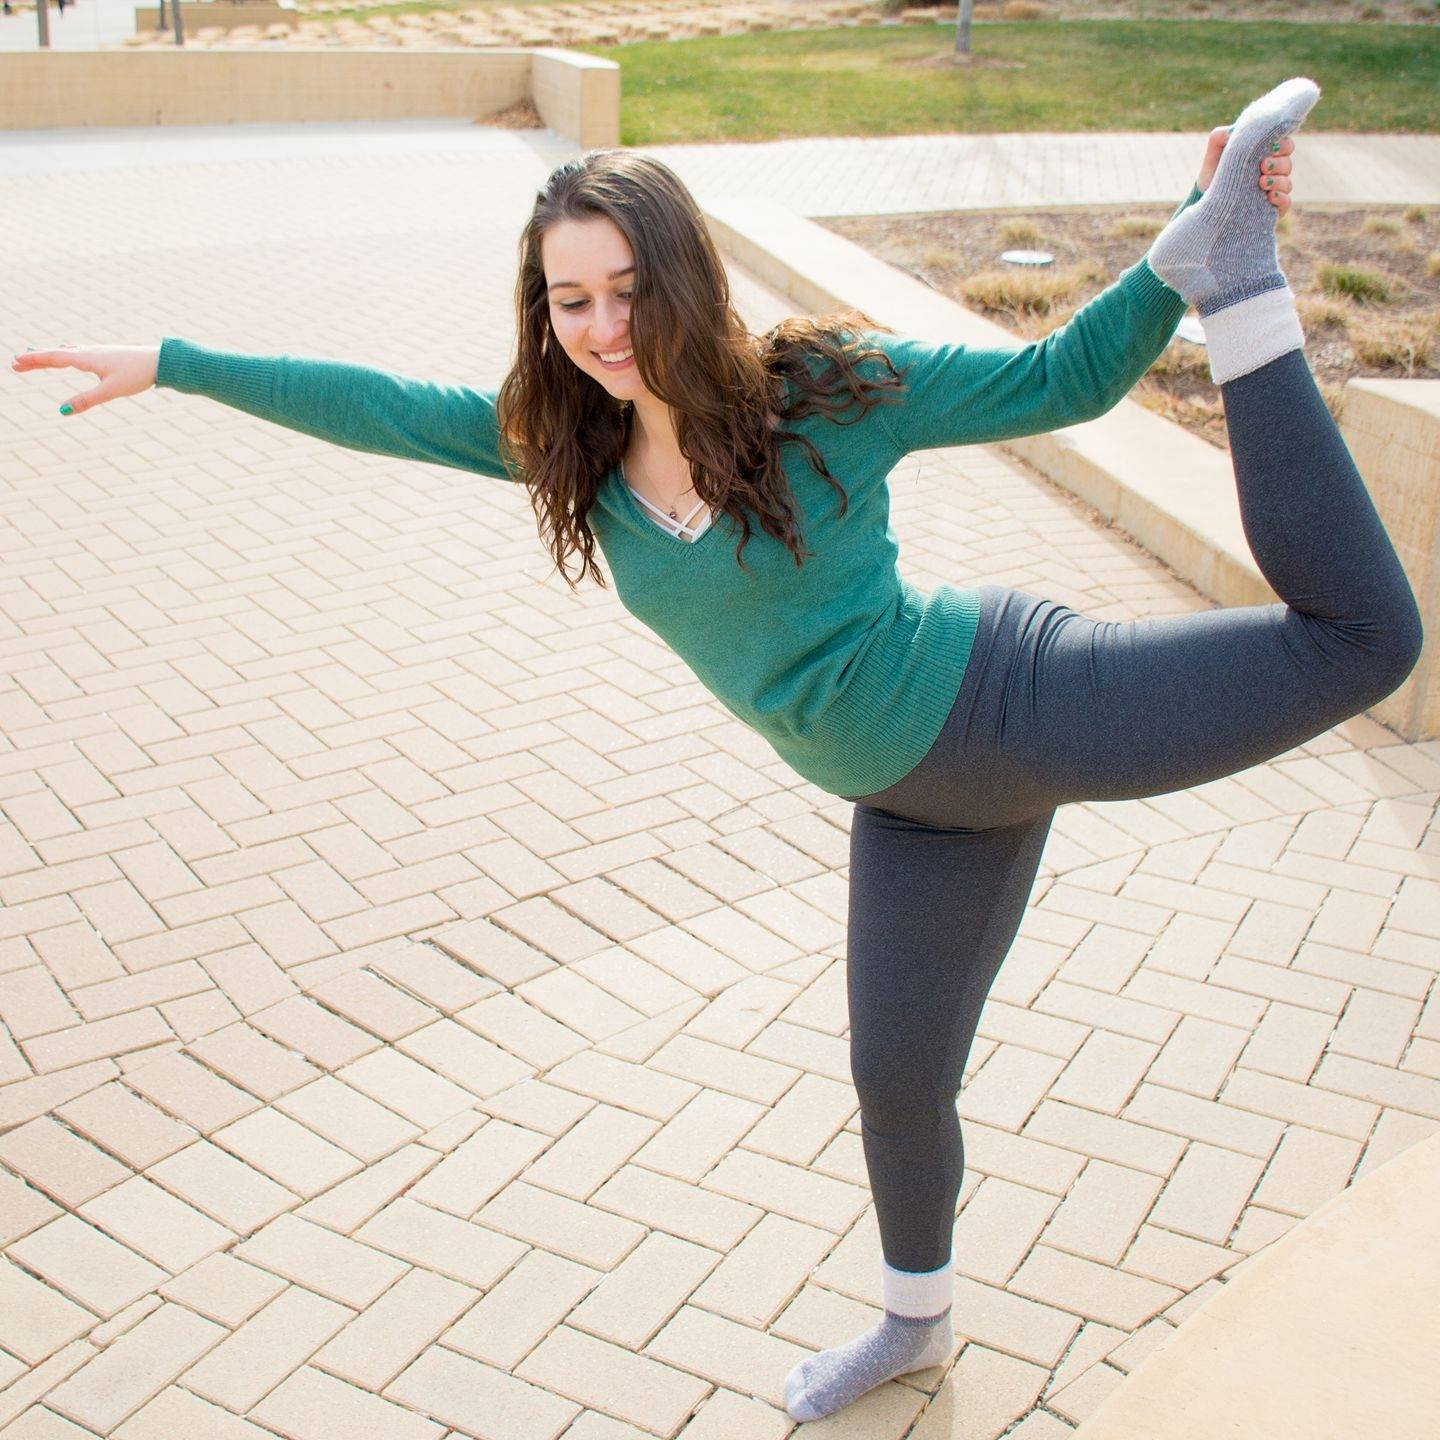 16627388_2_Falling_out_of_YogaPose_Leah.jpg